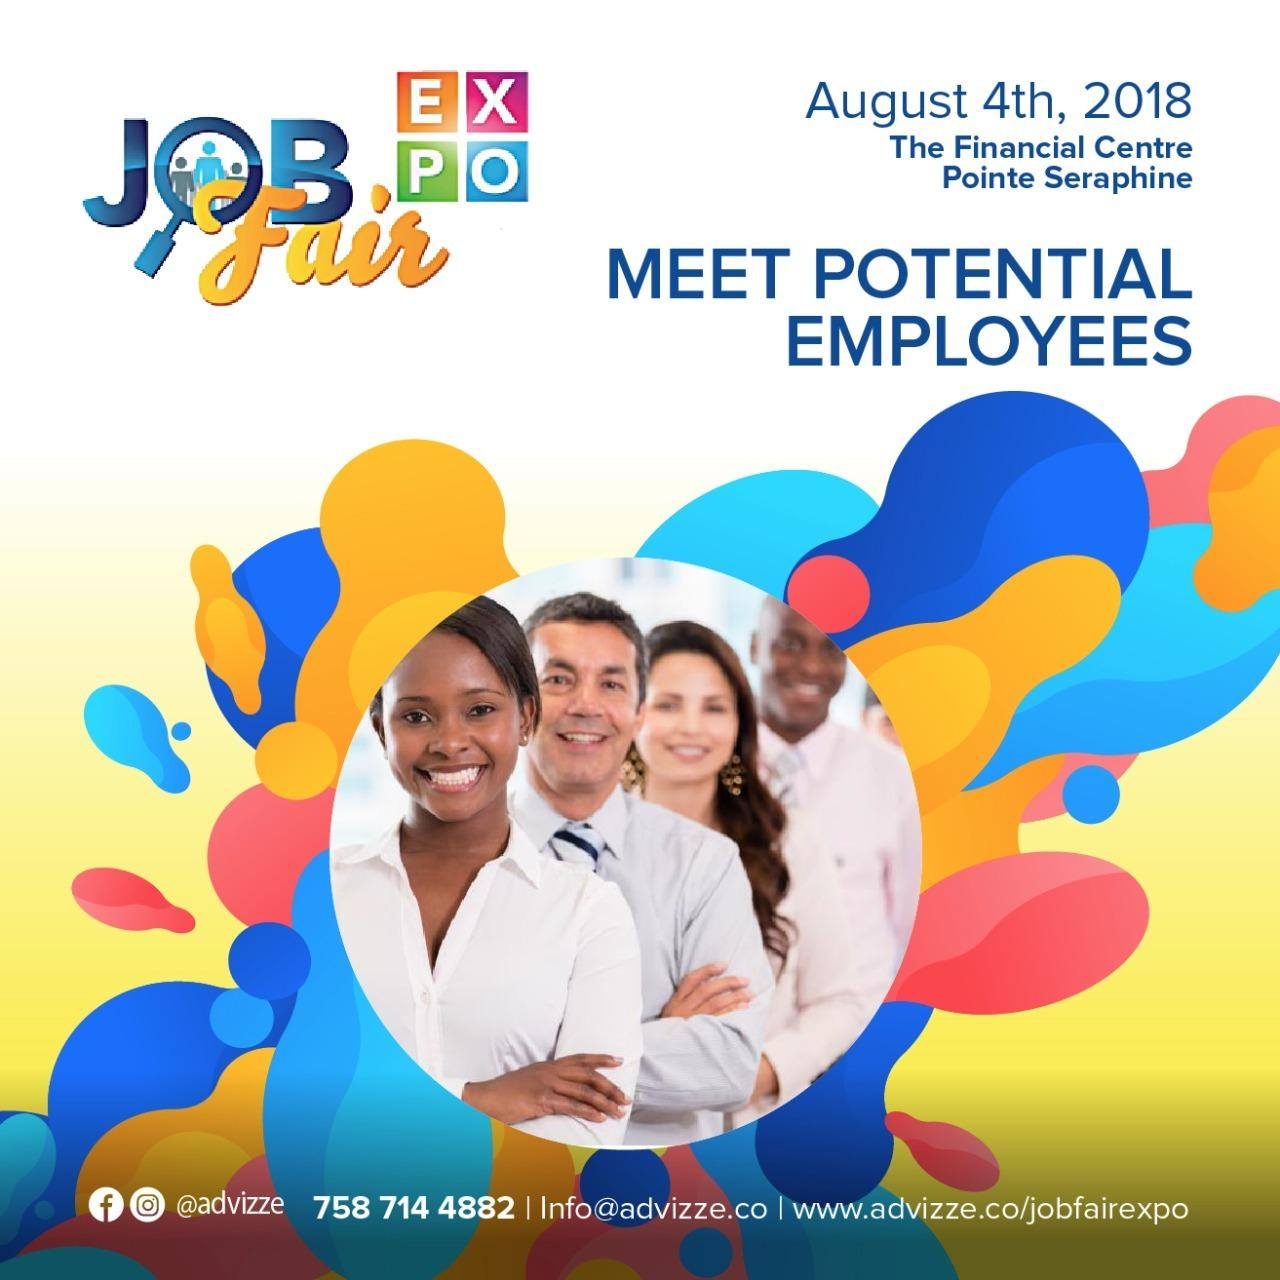 Job Fair Expo Financial Centre Pointe Seraphine August 4th